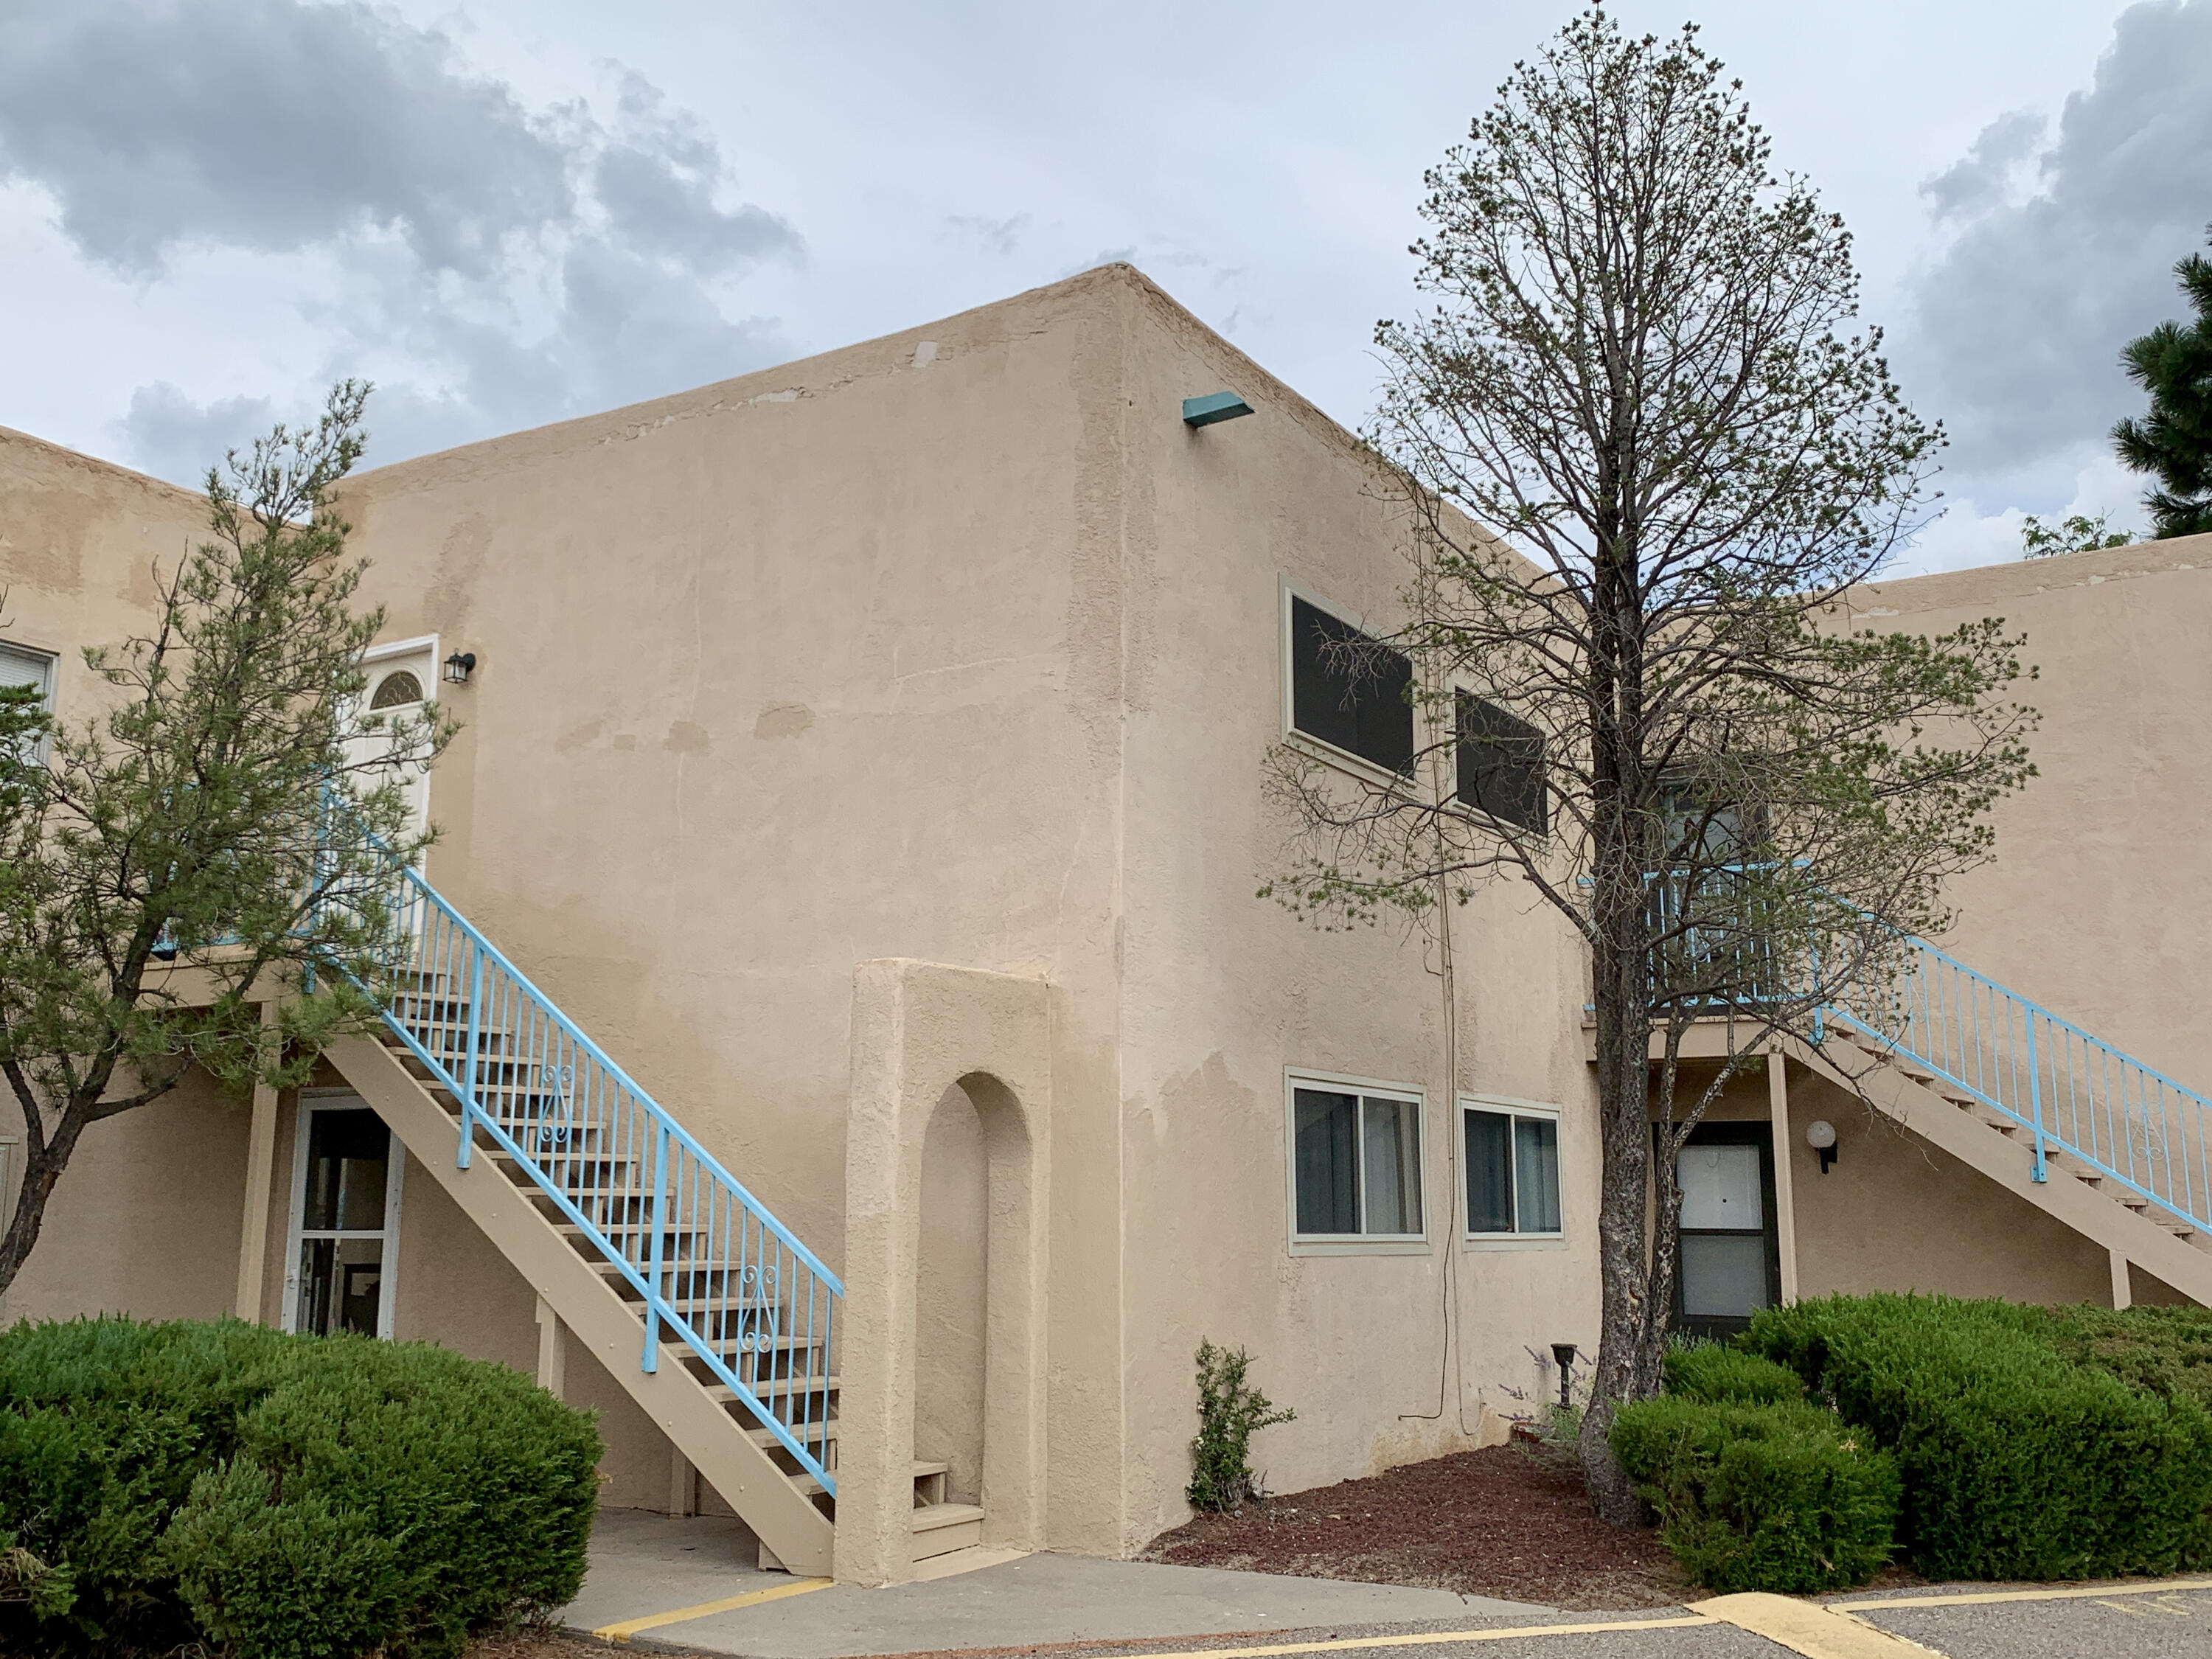 Great 2 Bed, 1 3/4 Bath Condo in a wonderful quiet location with easy access to anywhere in Albuquerque or Rio Rancho. The unit is on the top (second) floor, so one is above you. Enter into the open living room, dining, kitchen, and you are greeted with a wall of windows facing the Sandias opening to a fantastic balcony for balloon viewing. One of the two generous bedrooms has it's own ensuite 3/4 bath. There is a full size washer and dryer in the unit, and those plus the stove, refrigerator, and dishwasher will convey with the sale. There is one carport space just down the stairs across from the unit, and be sure to check out the ample sized locked storage unit marked #4 just in front. New windows were installed in 2019. HOA covers gas, water, exterior of building and grounds. Sweet place